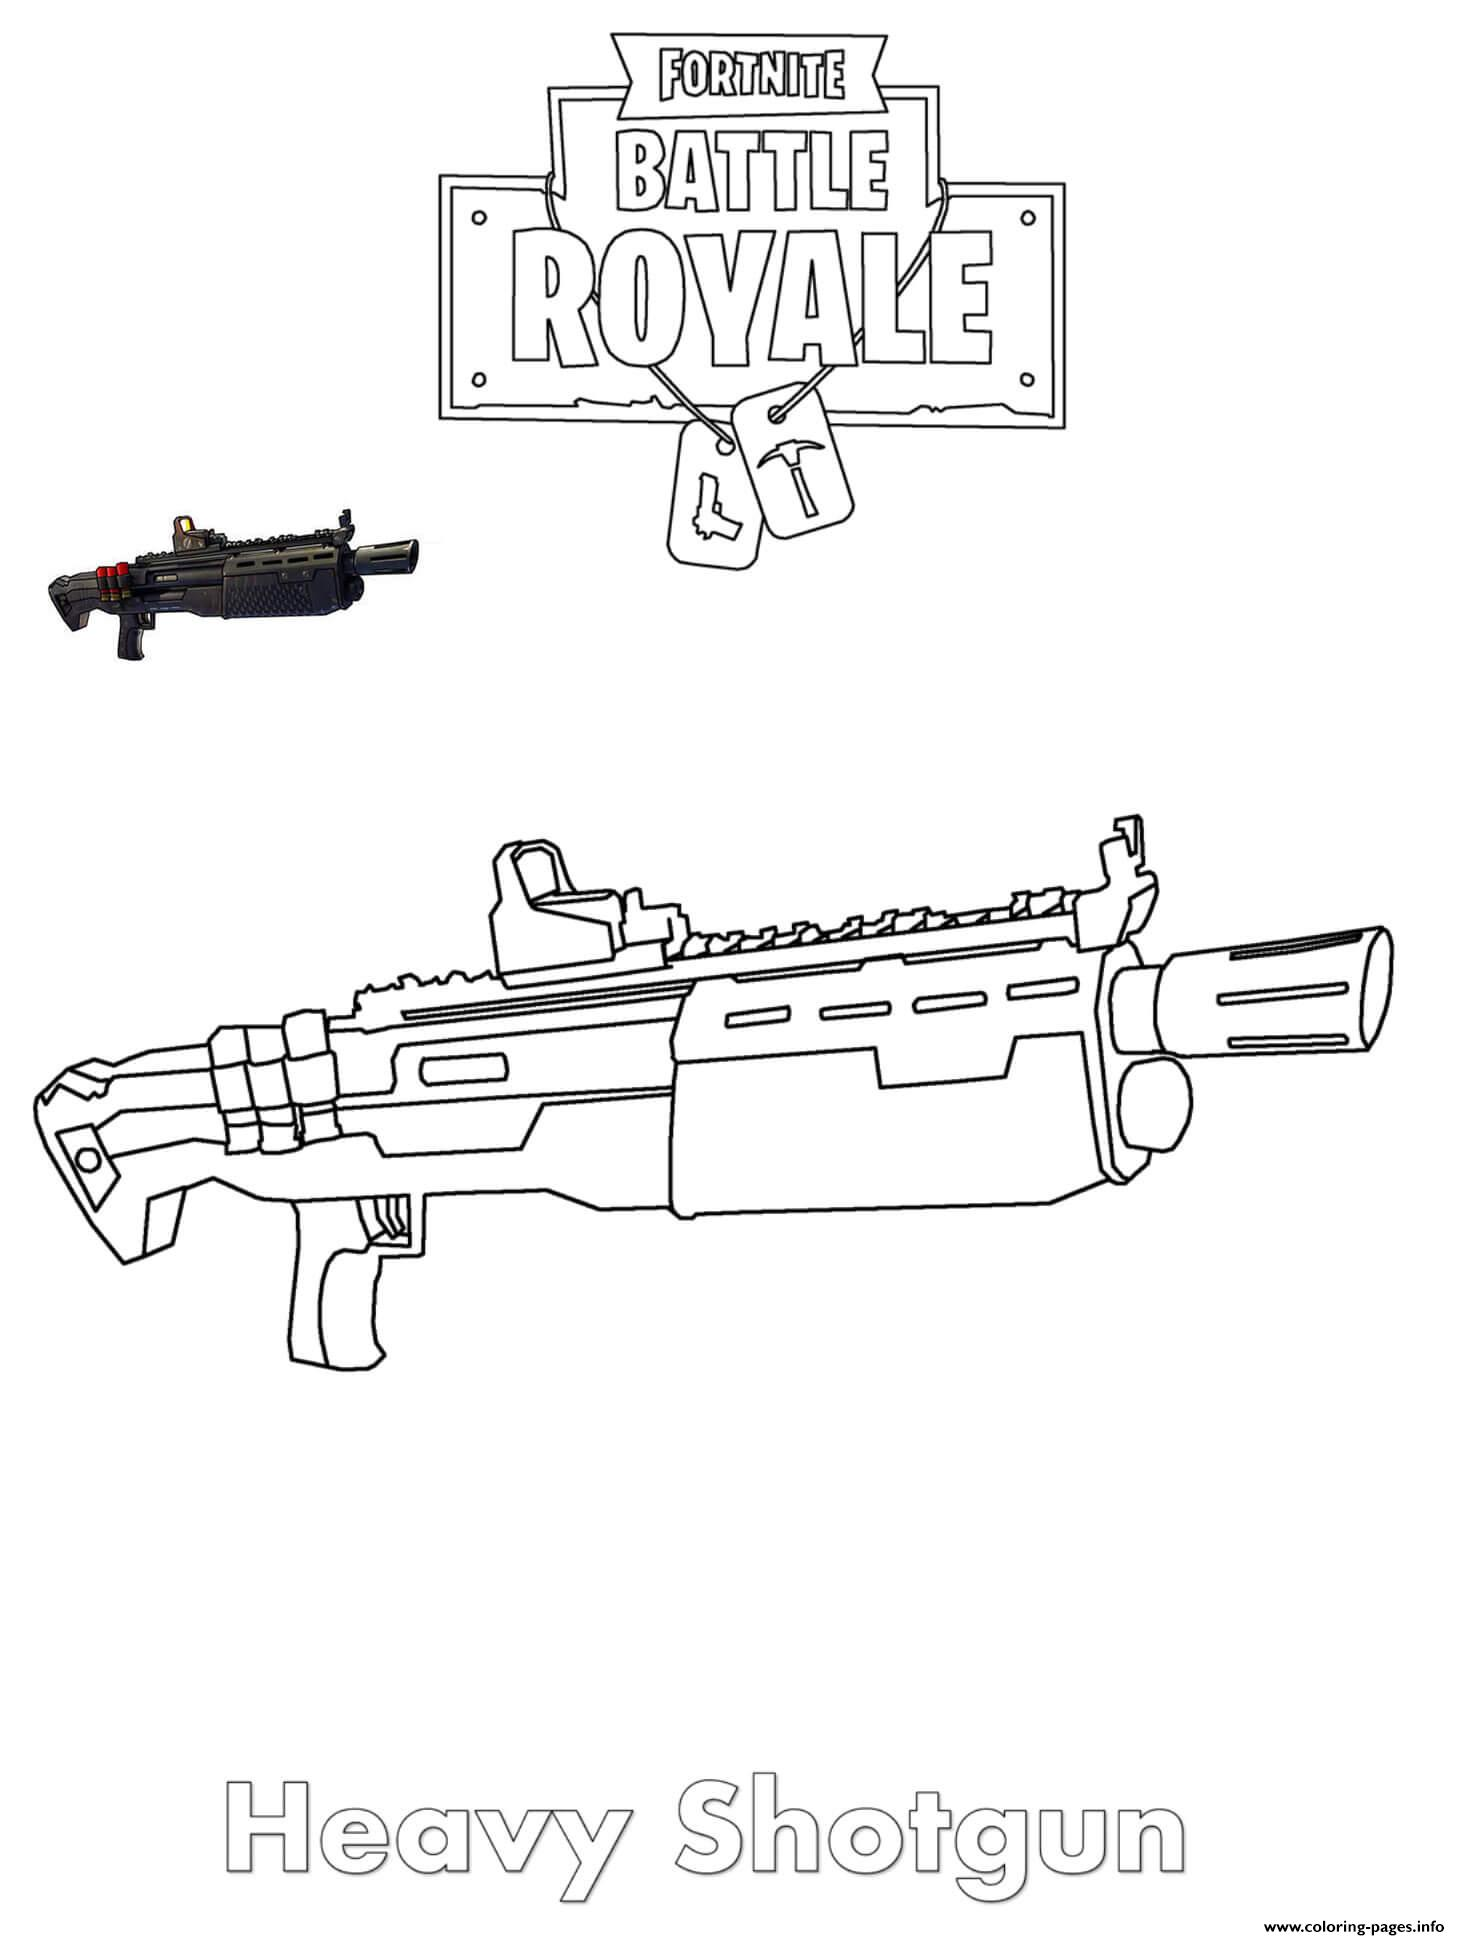 Heavy Shotgun Fortnite coloring pages